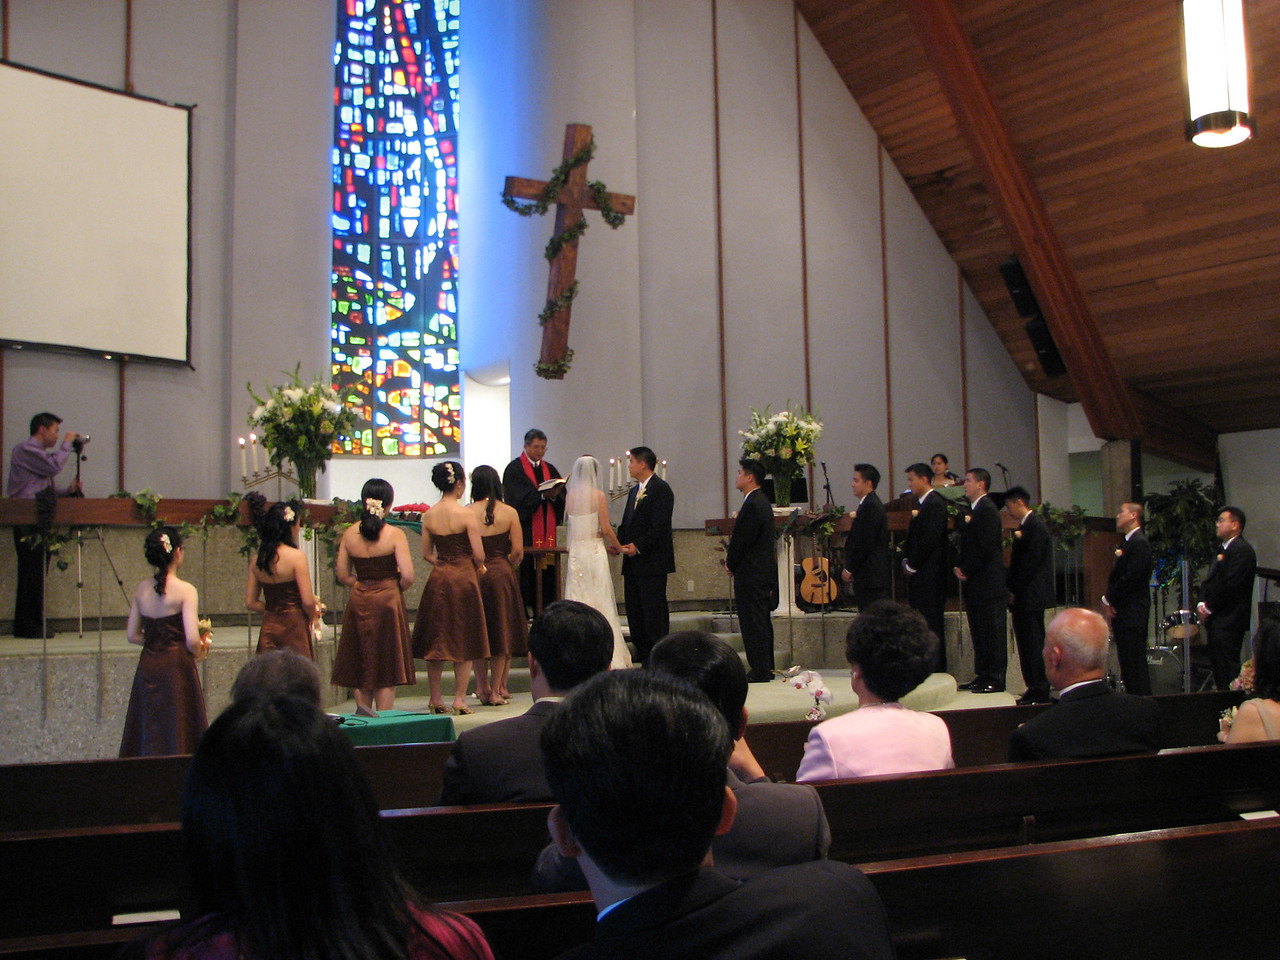 2007 06 09 Sat - Exchanging of vows 1